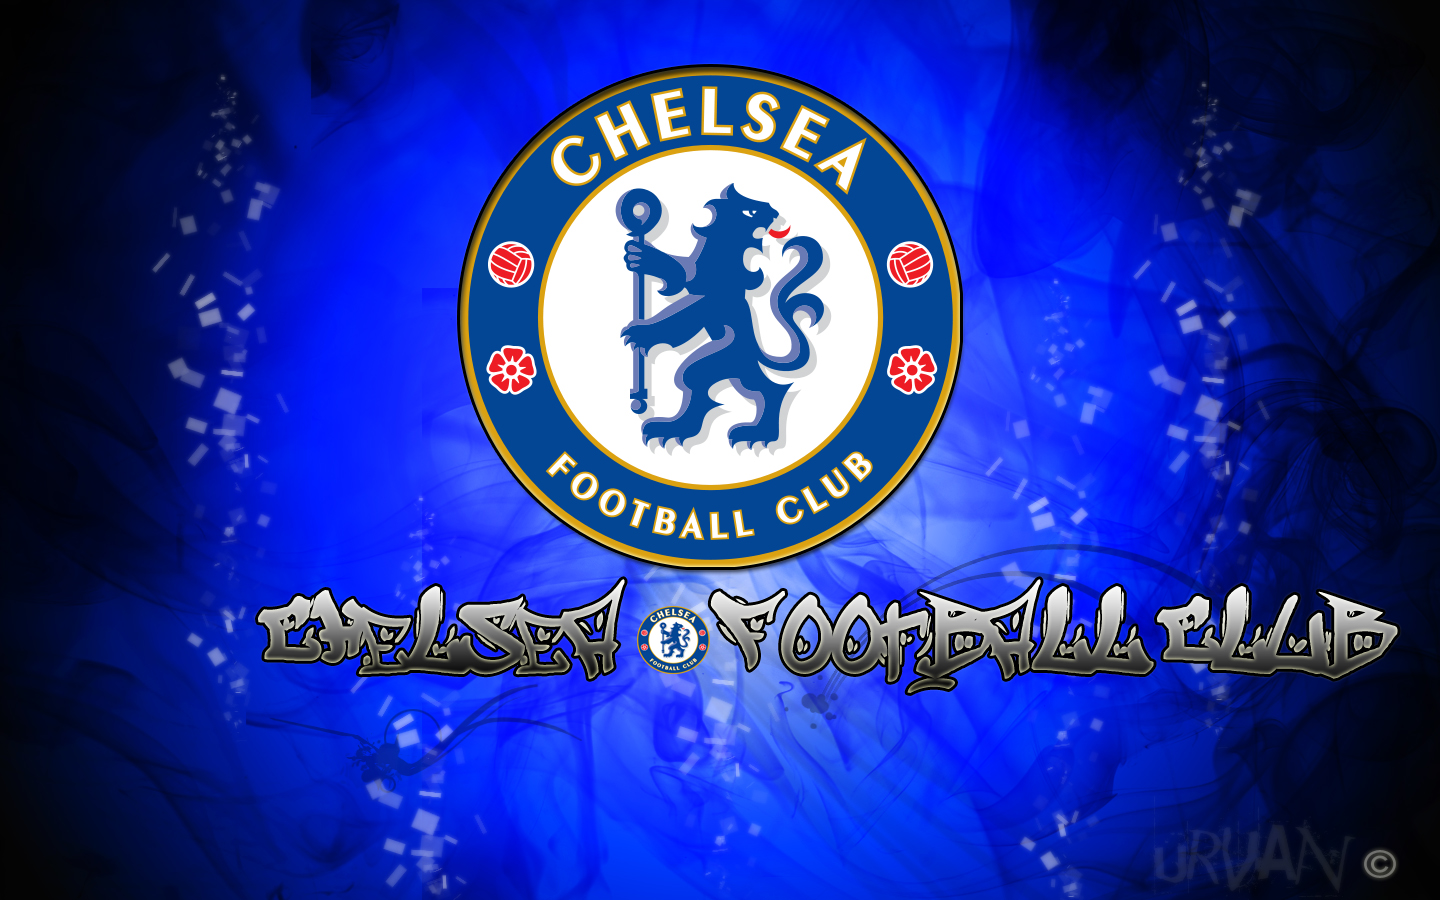 Chelsea fc pictures and videos chelsea fc logo hd wallpapers chelsea voltagebd Image collections